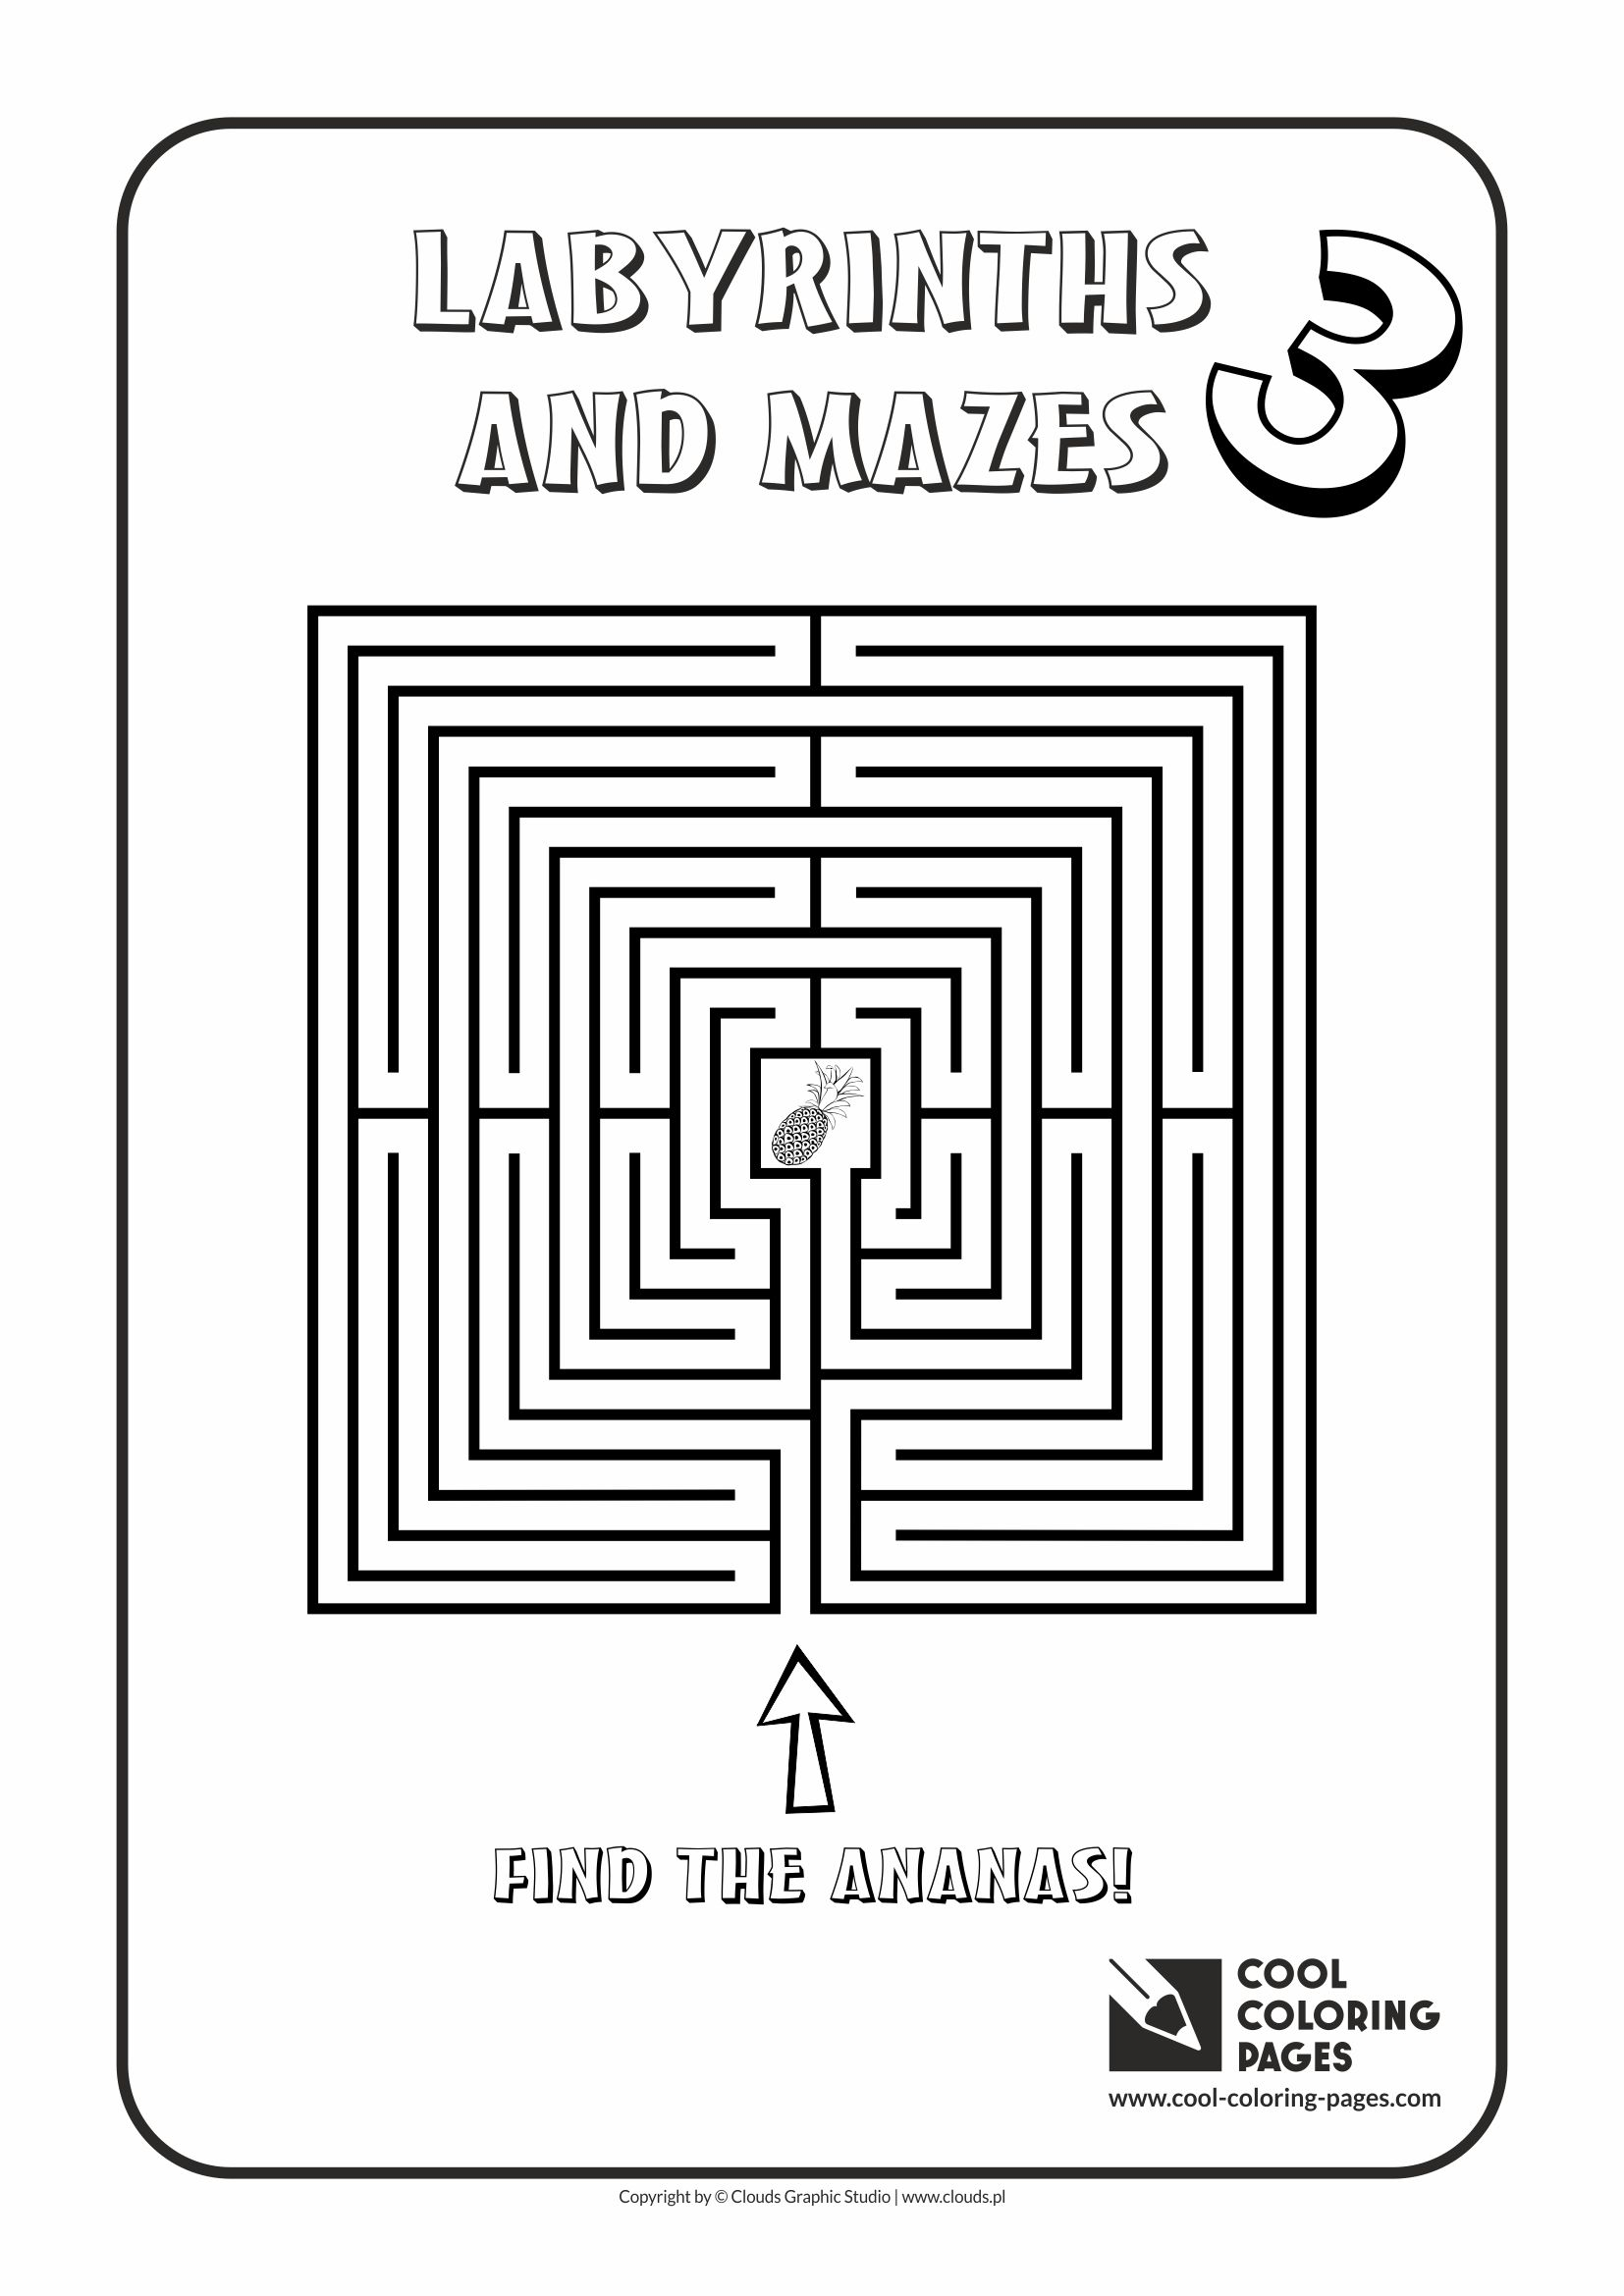 Cool Coloring Pages - Labyrinths and mazes / Maze no 3